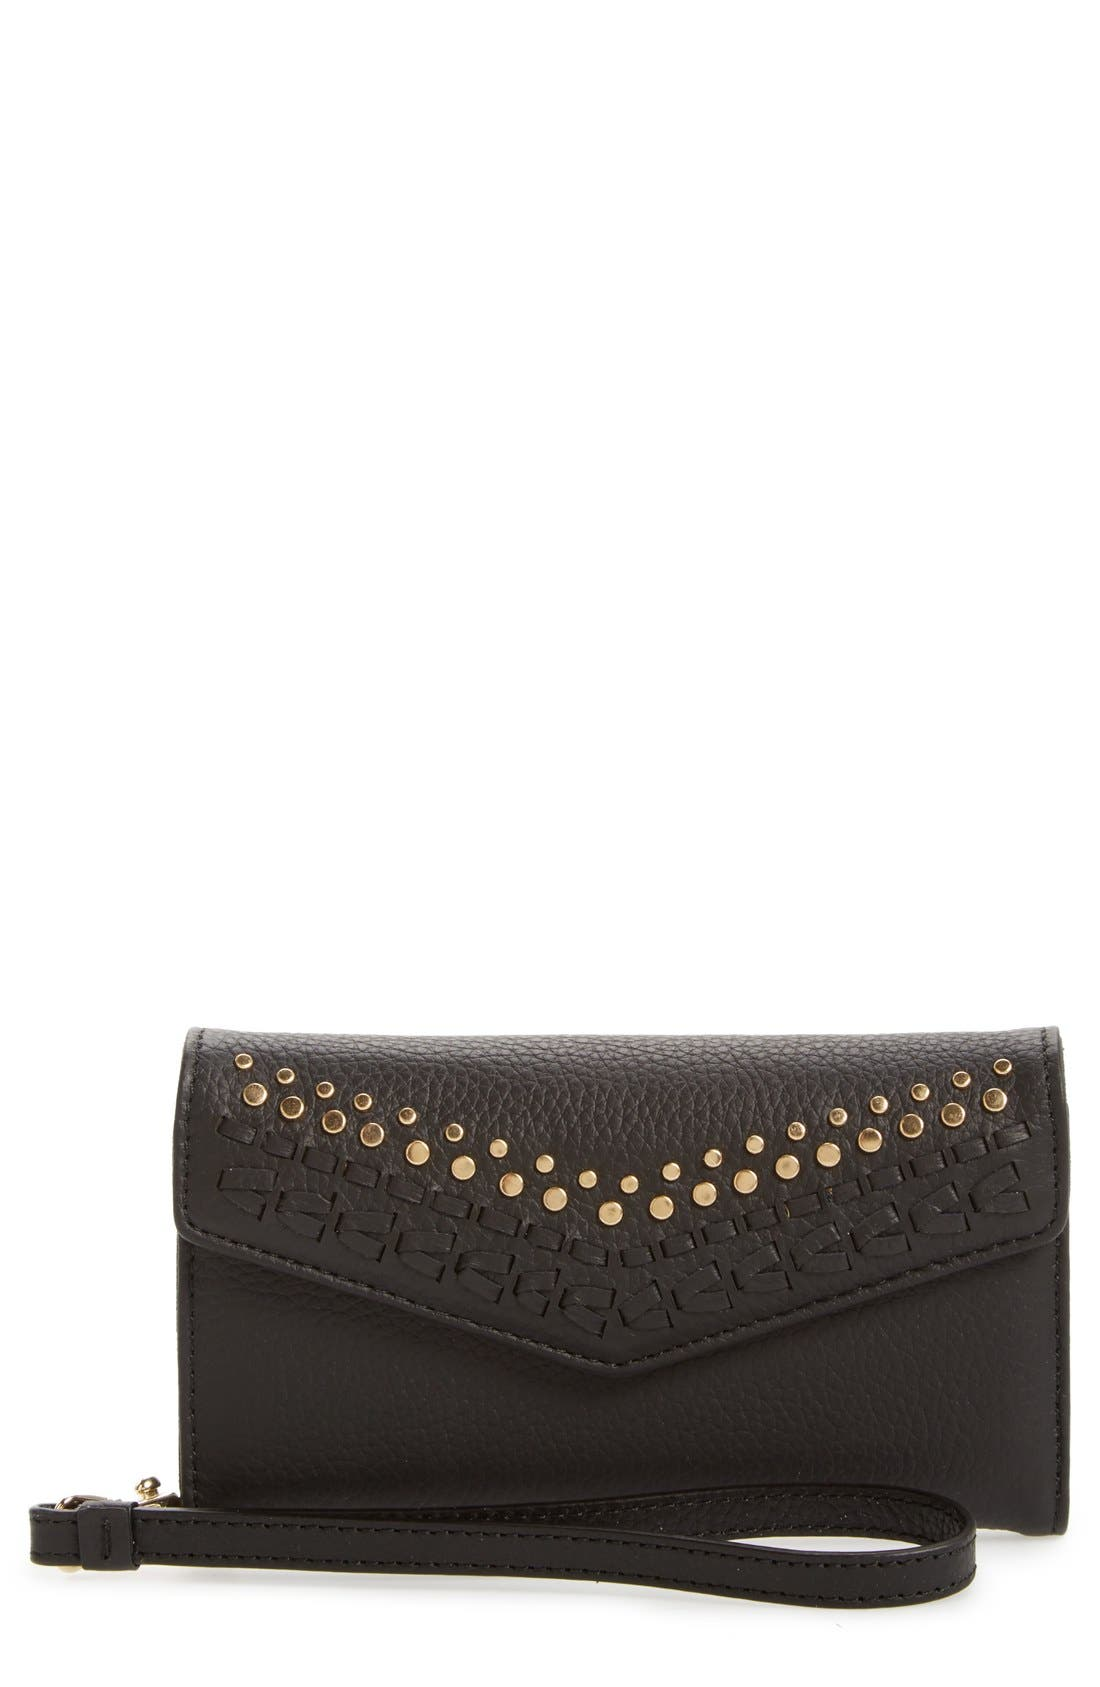 Alternate Image 1 Selected - Rebecca Minkoff Whipstitch iPhone 7 Wristlet